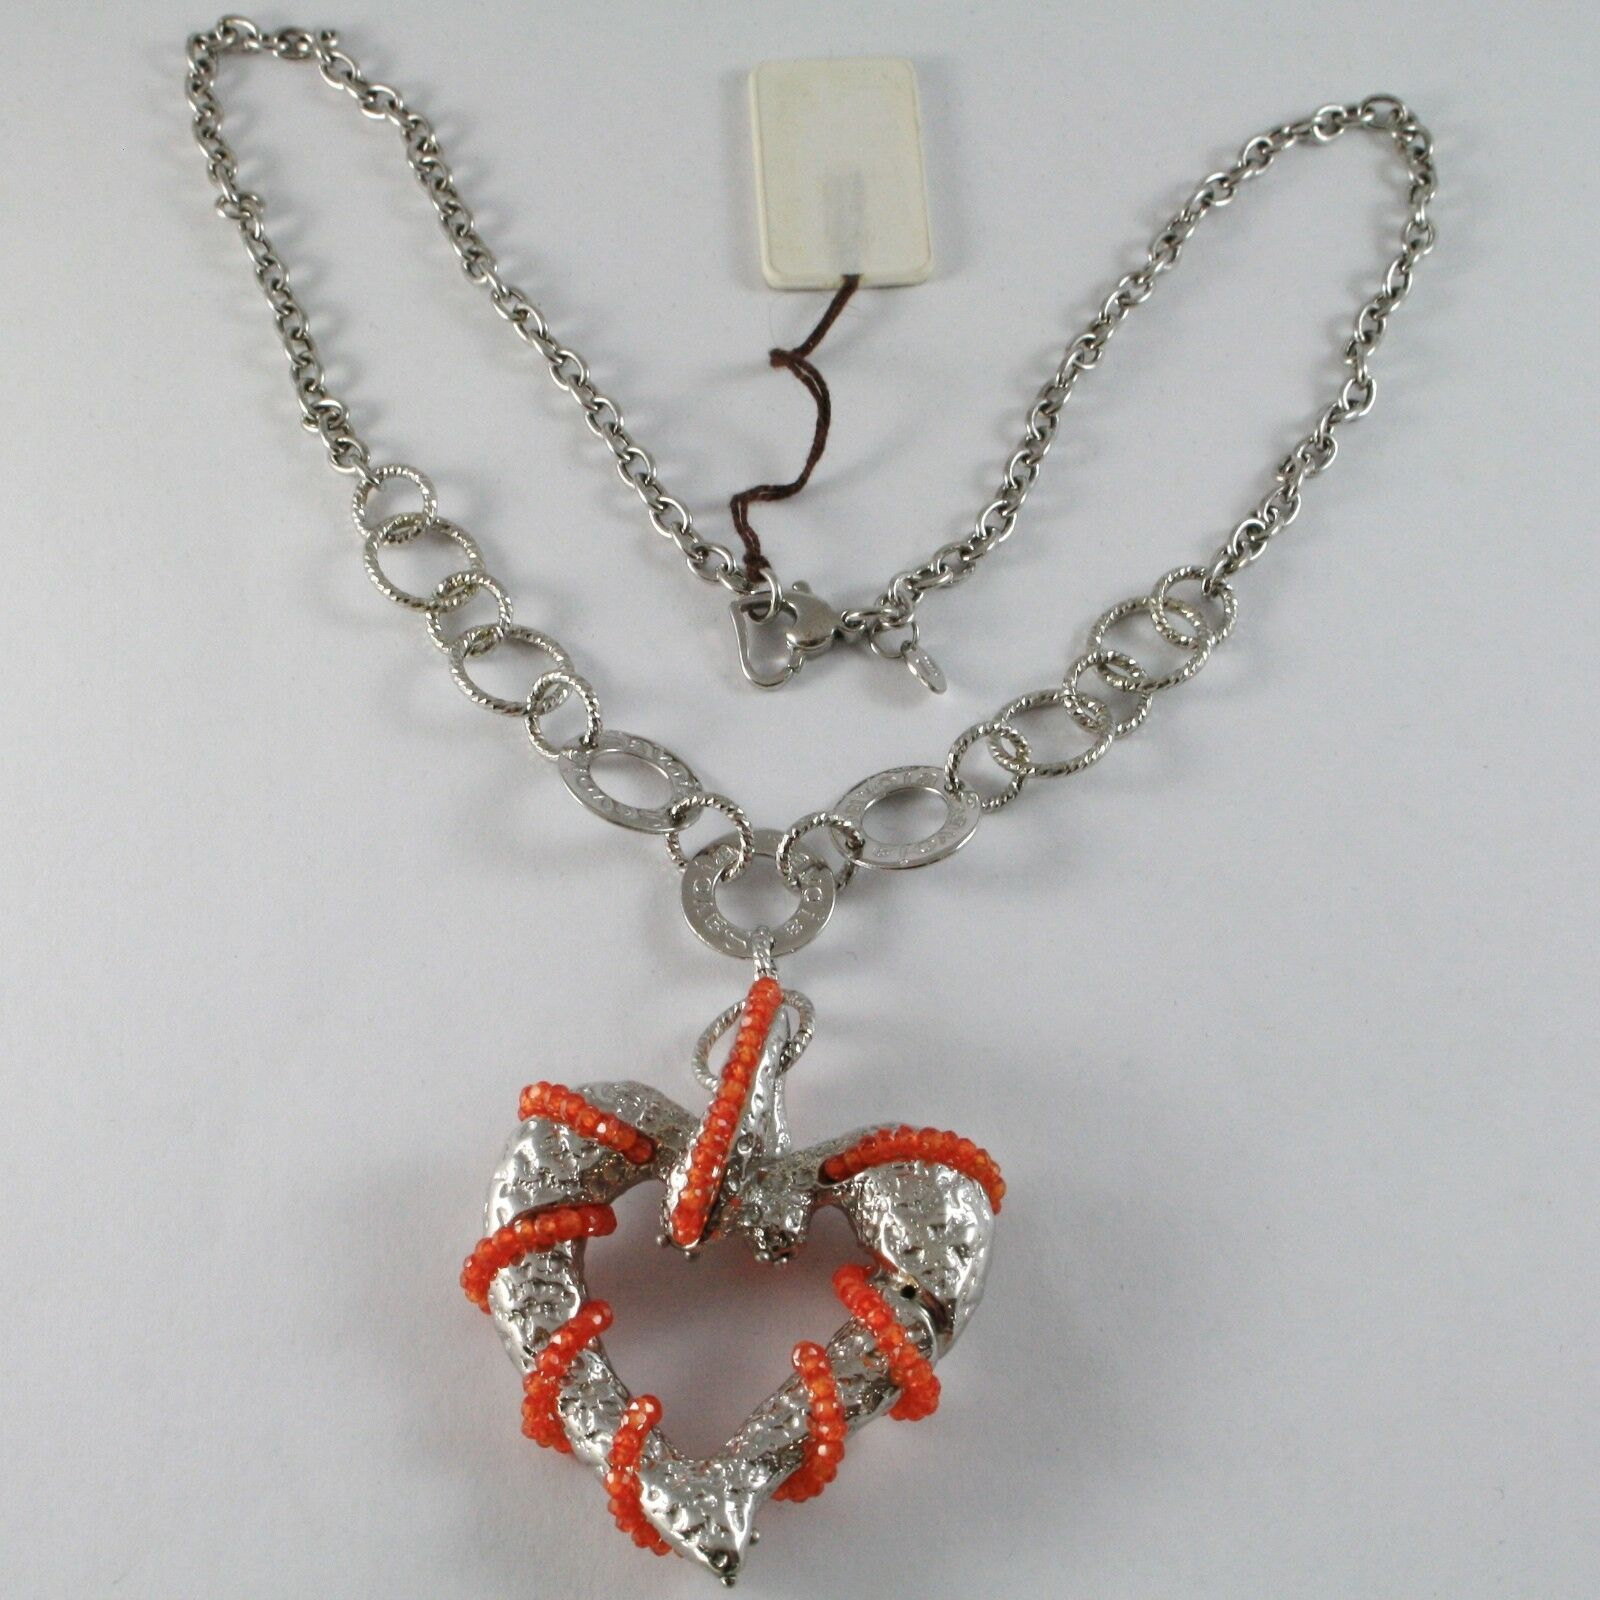 Necklace Silver 925 with Pendant Big Heart Milled and Carnelian, Chain Rolo '